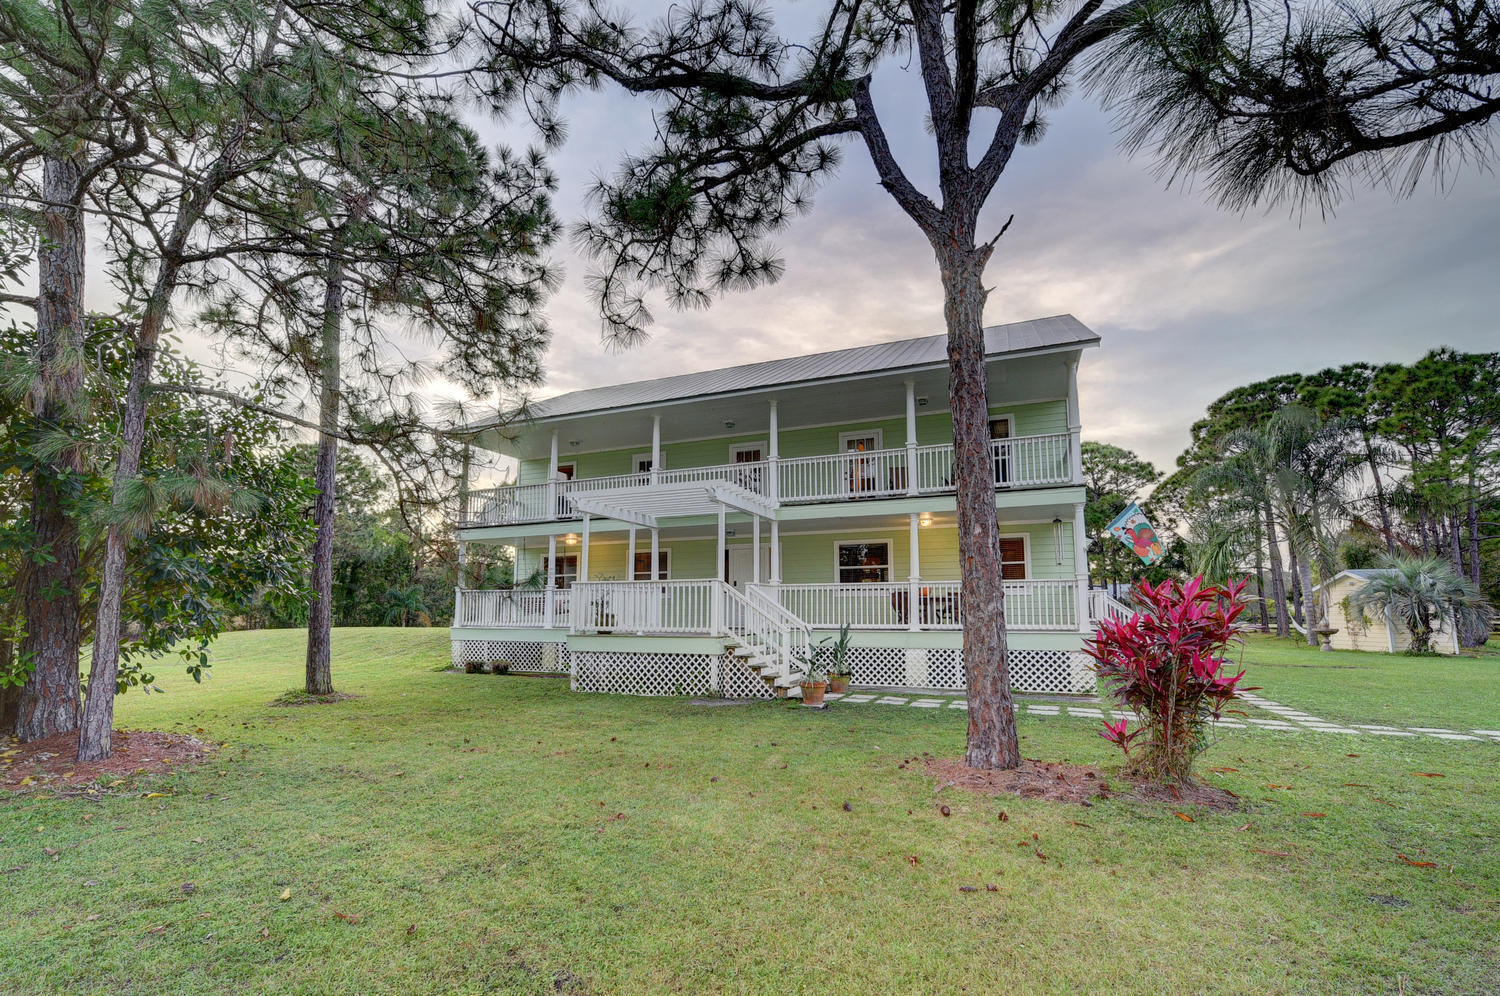 4046 42nd Avenue, Palm City, Florida 34990, 5 Bedrooms Bedrooms, ,3.1 BathroomsBathrooms,Single Family,For Sale,42nd,RX-10591849